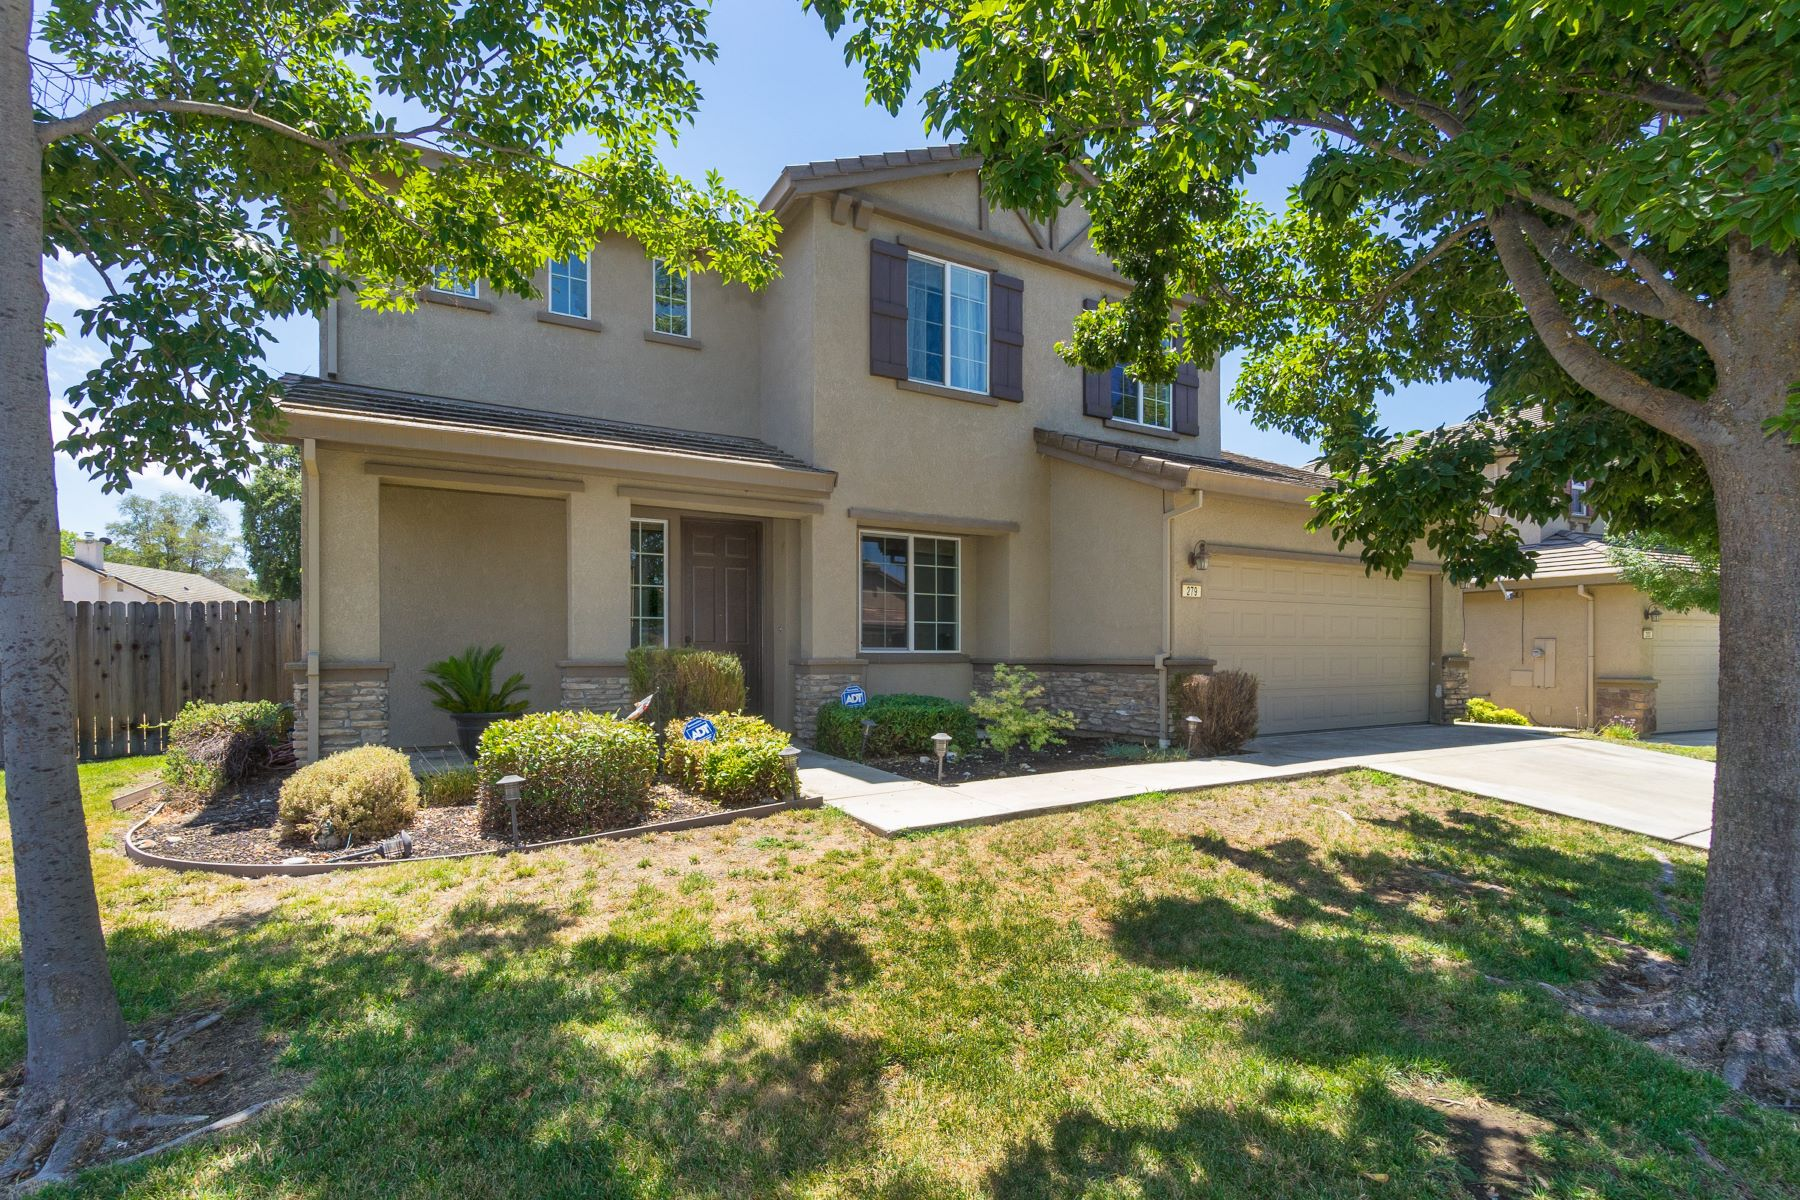 Single Family Home for Sale at Gated Golf Course Community Living 279 Gold King Drive Valley Springs, California 95252 United States